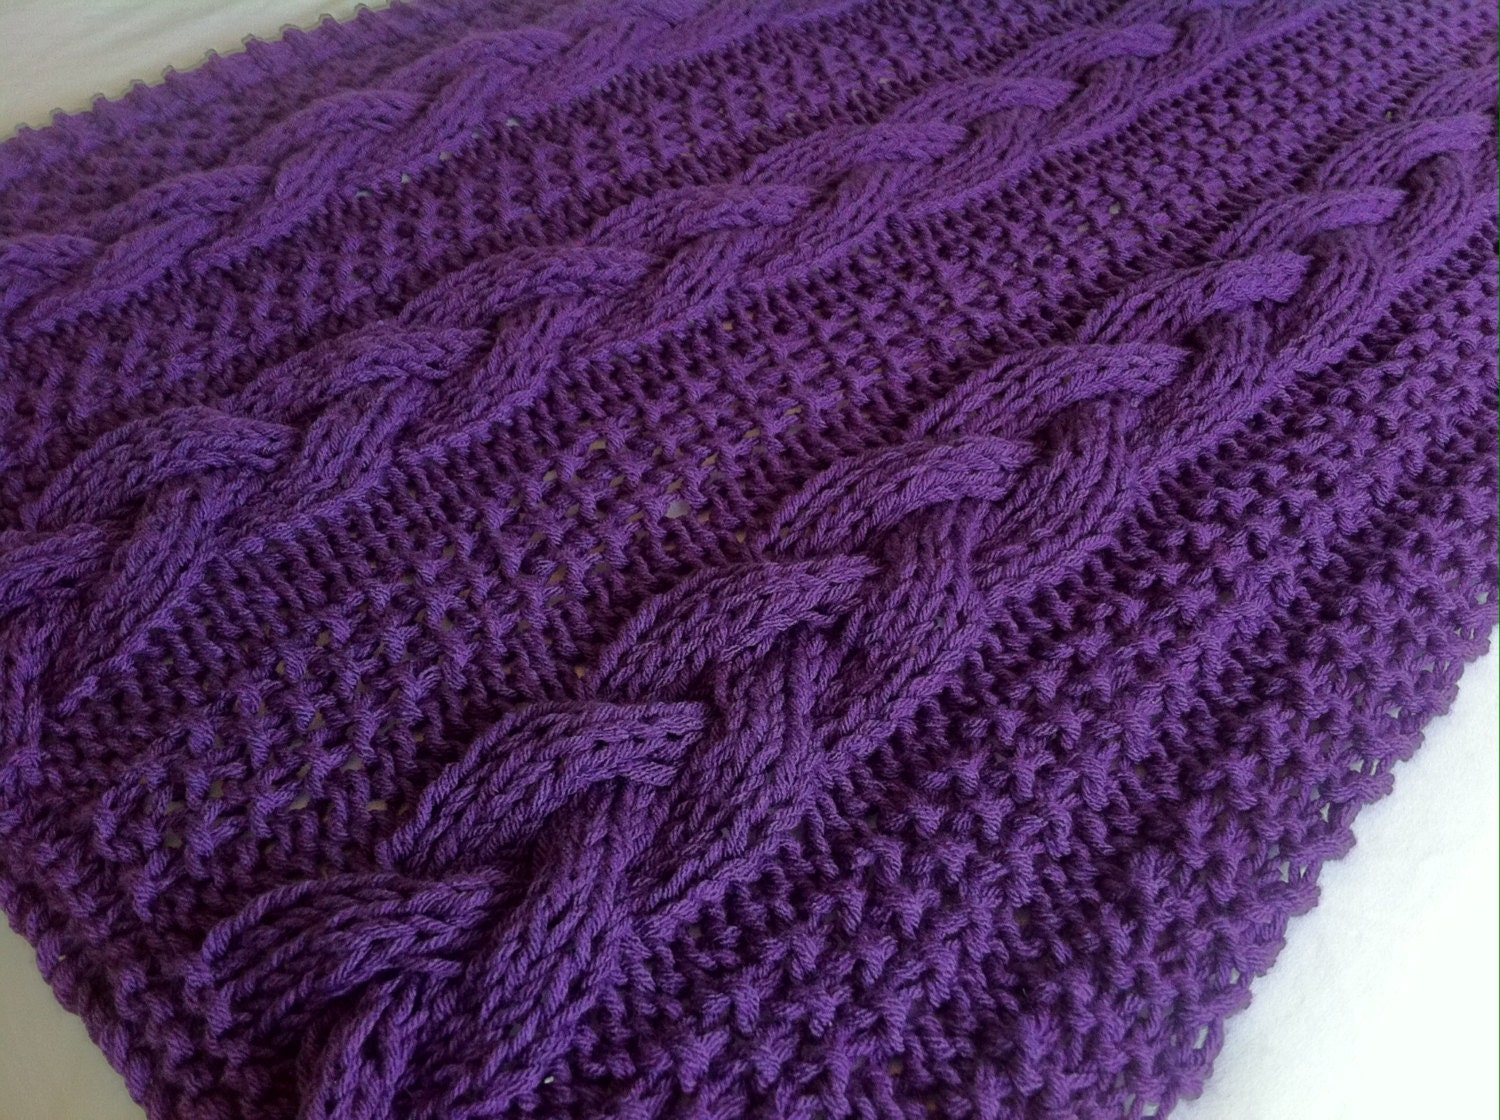 Braided Cable Chunky Blanket / Throw Knitting pattern